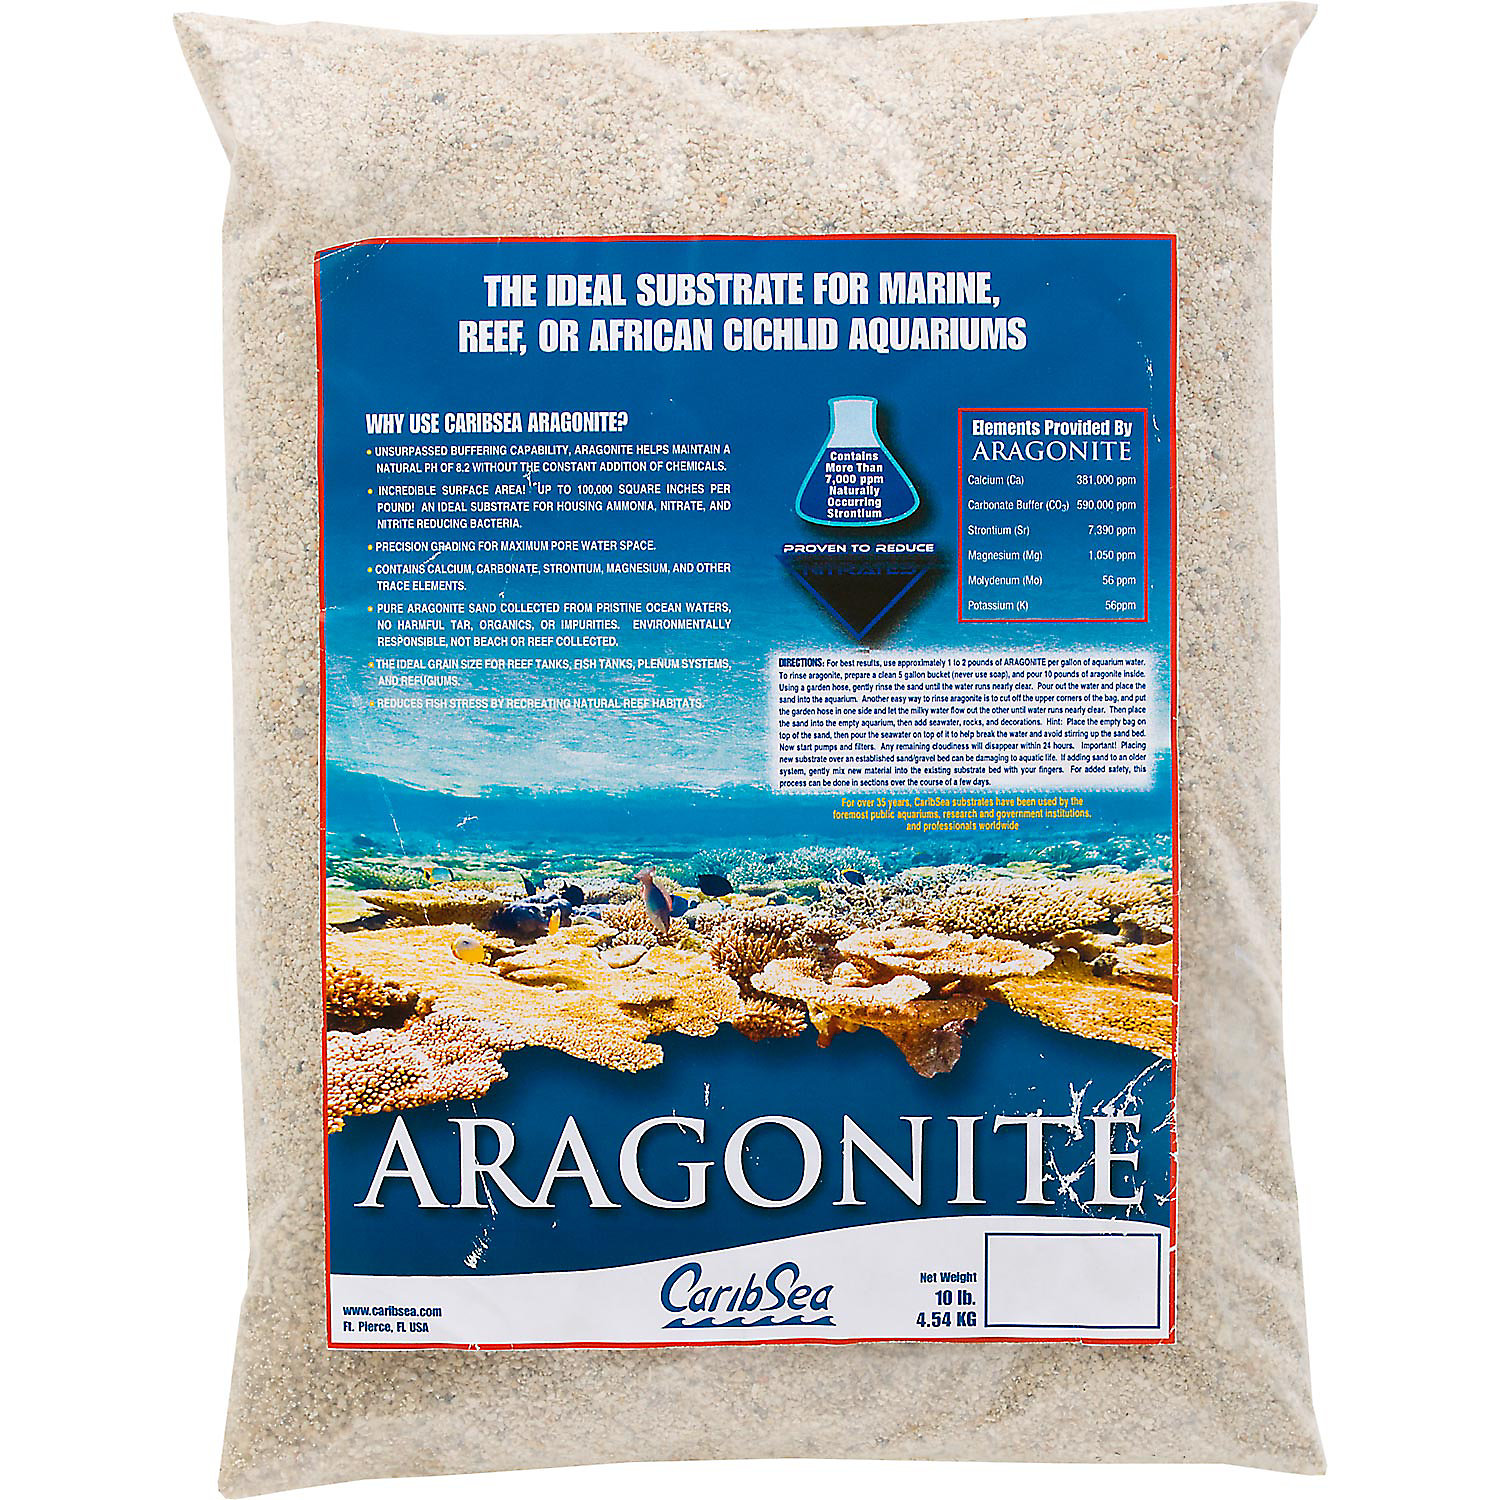 CaribSea Aragonite Aquarium Sand, 10 lbs., Tan